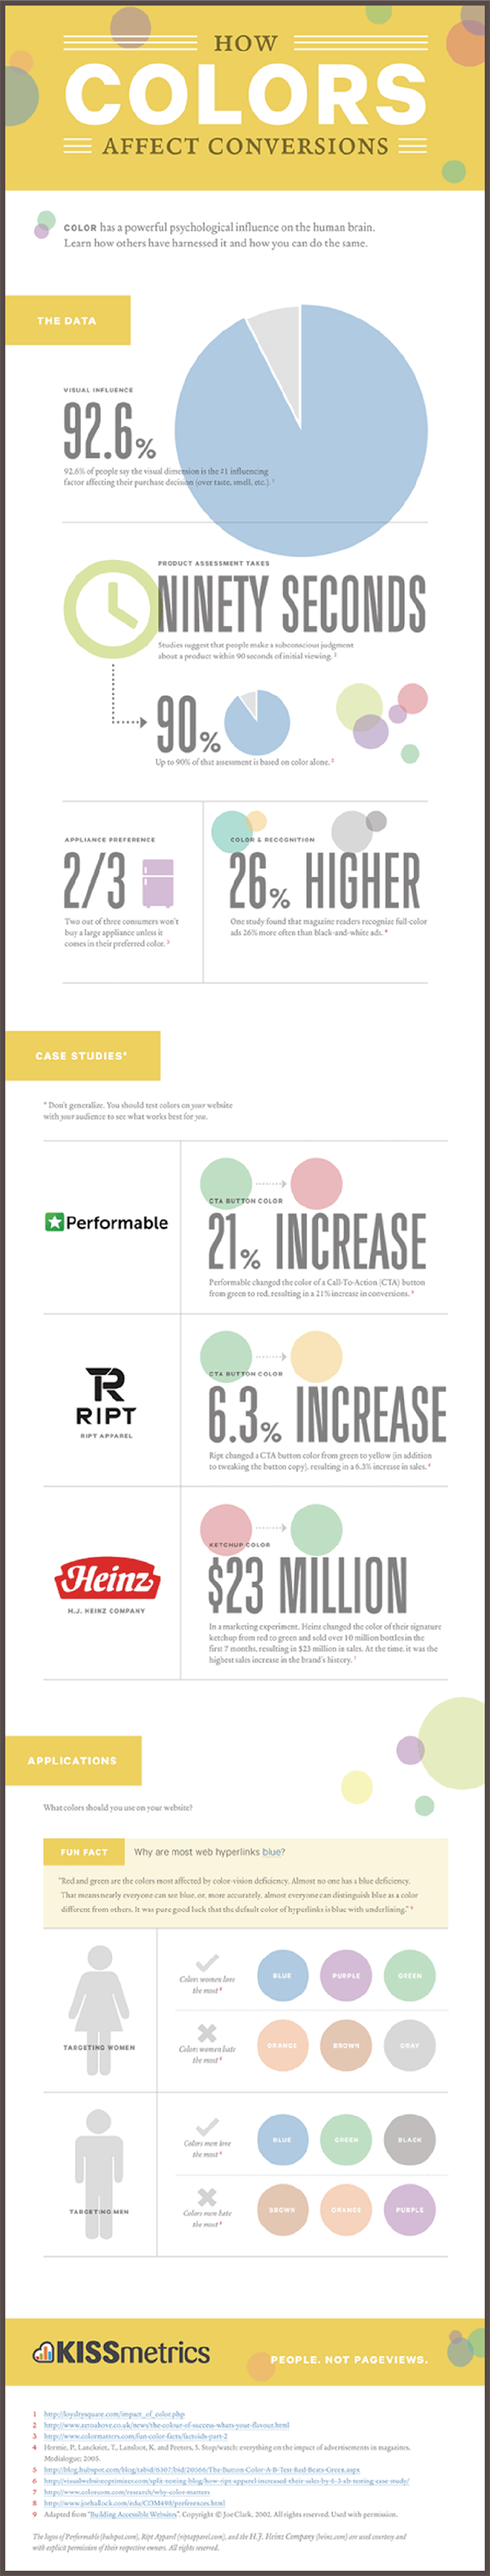 How Colors Impact Conversions